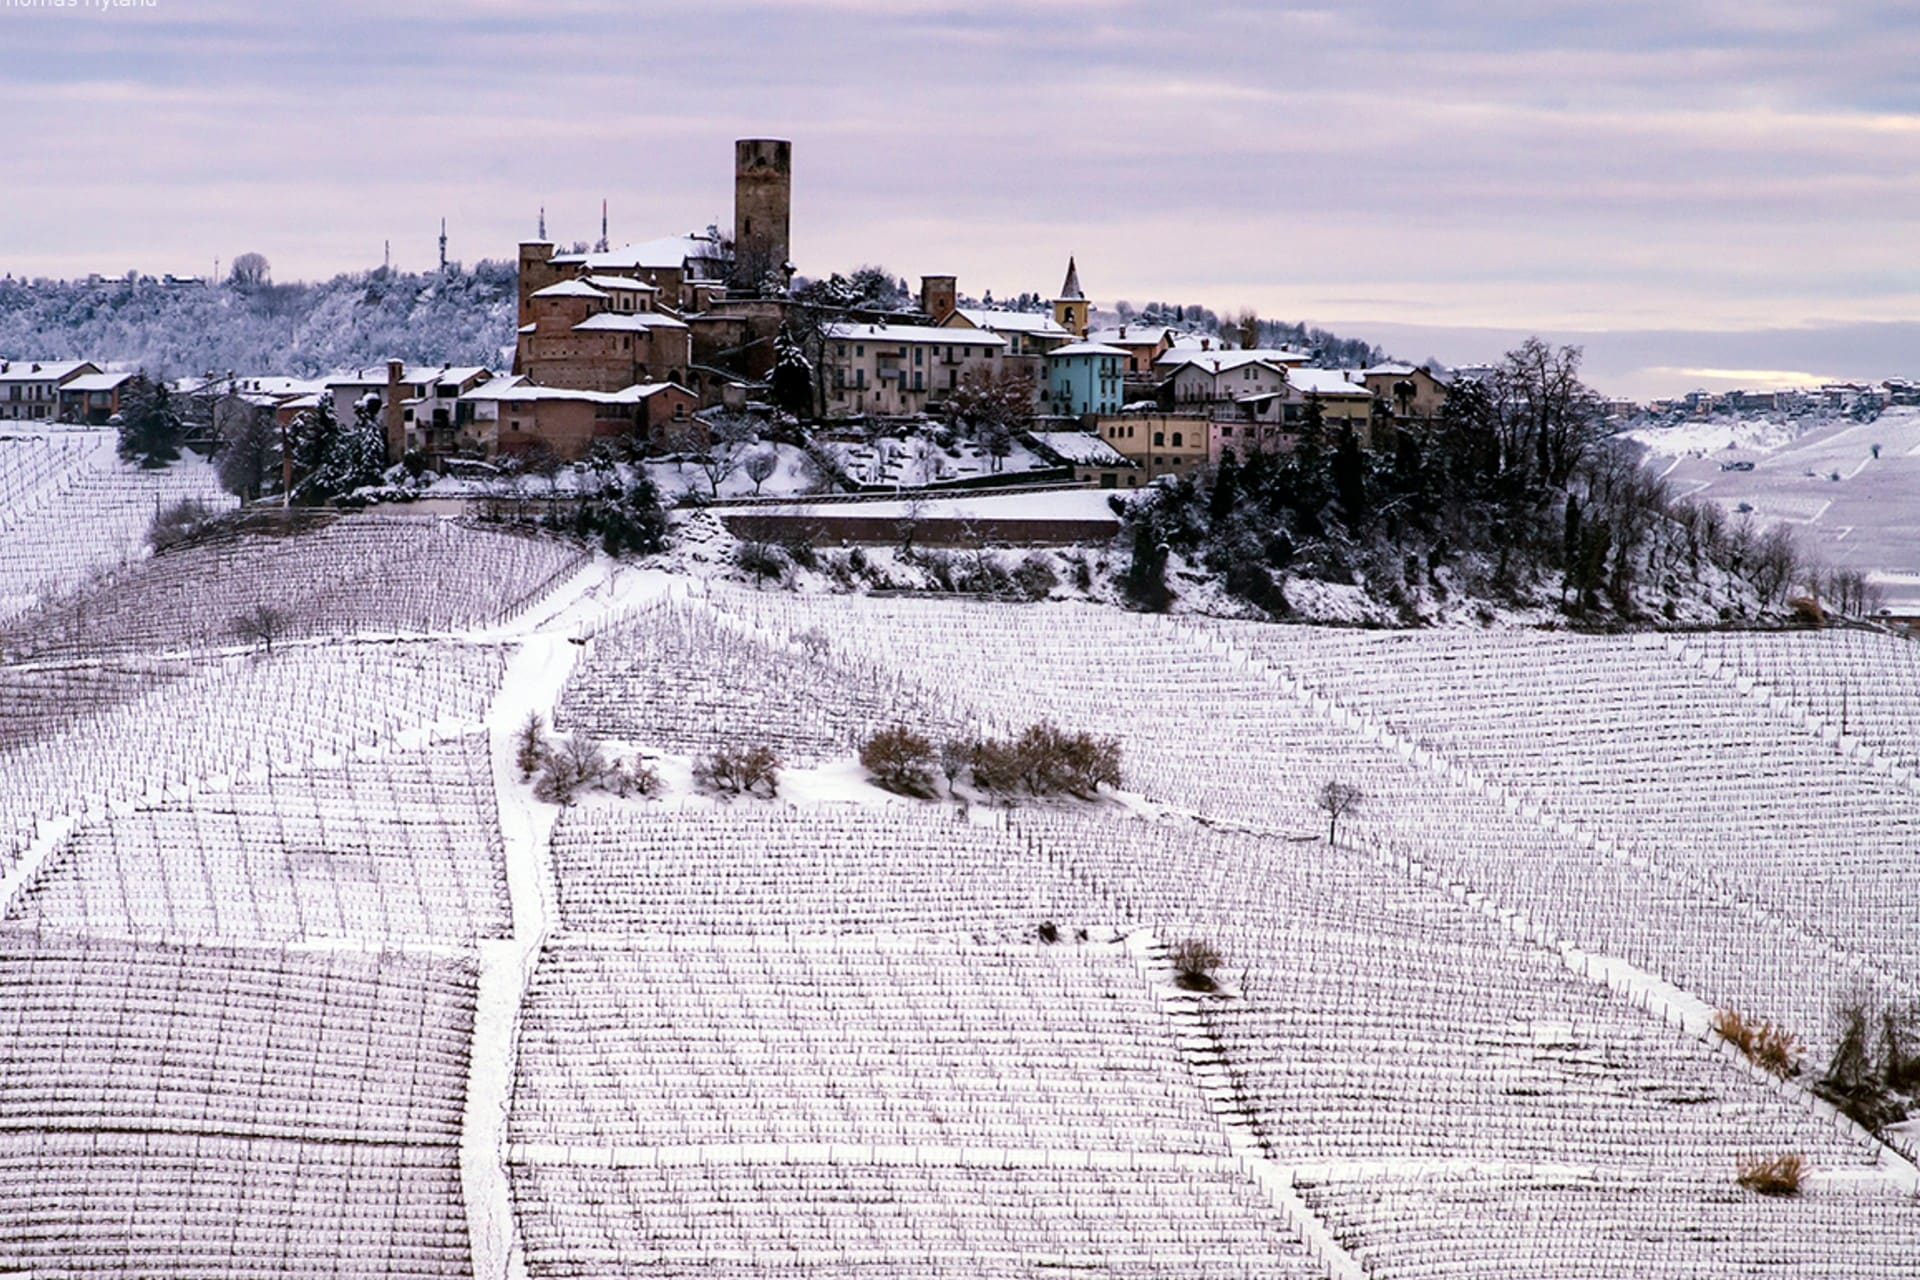 Errazuriz Wine Photographer of the Year (Places) A Langhe Winter by Thomas Hyland